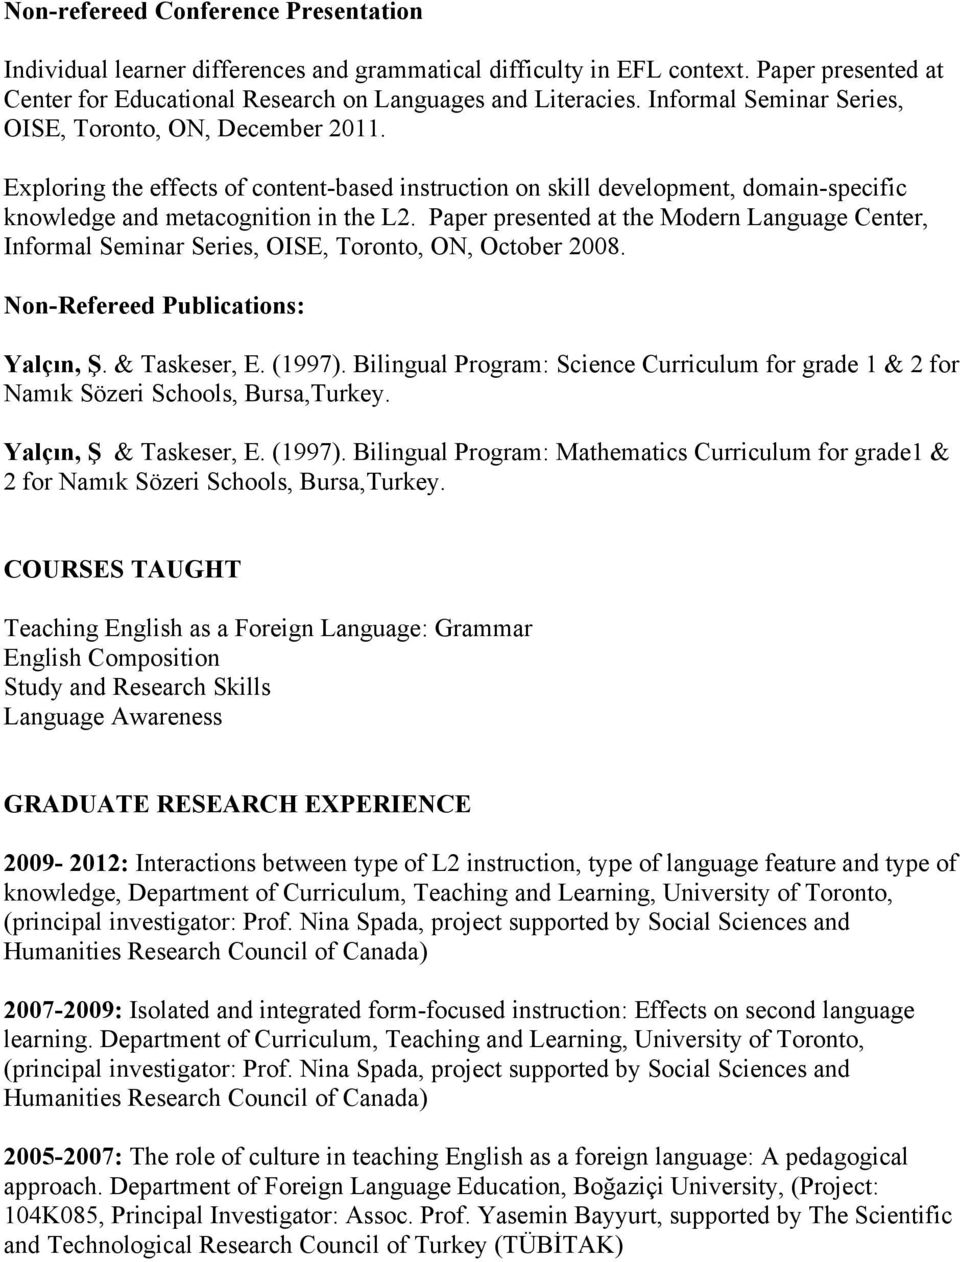 Paper presented at the Modern Language Center, Informal Seminar Series, OISE, Toronto, ON, October 2008. Non-Refereed Publications: Yalçın, Ş. & Taskeser, E. (1997).